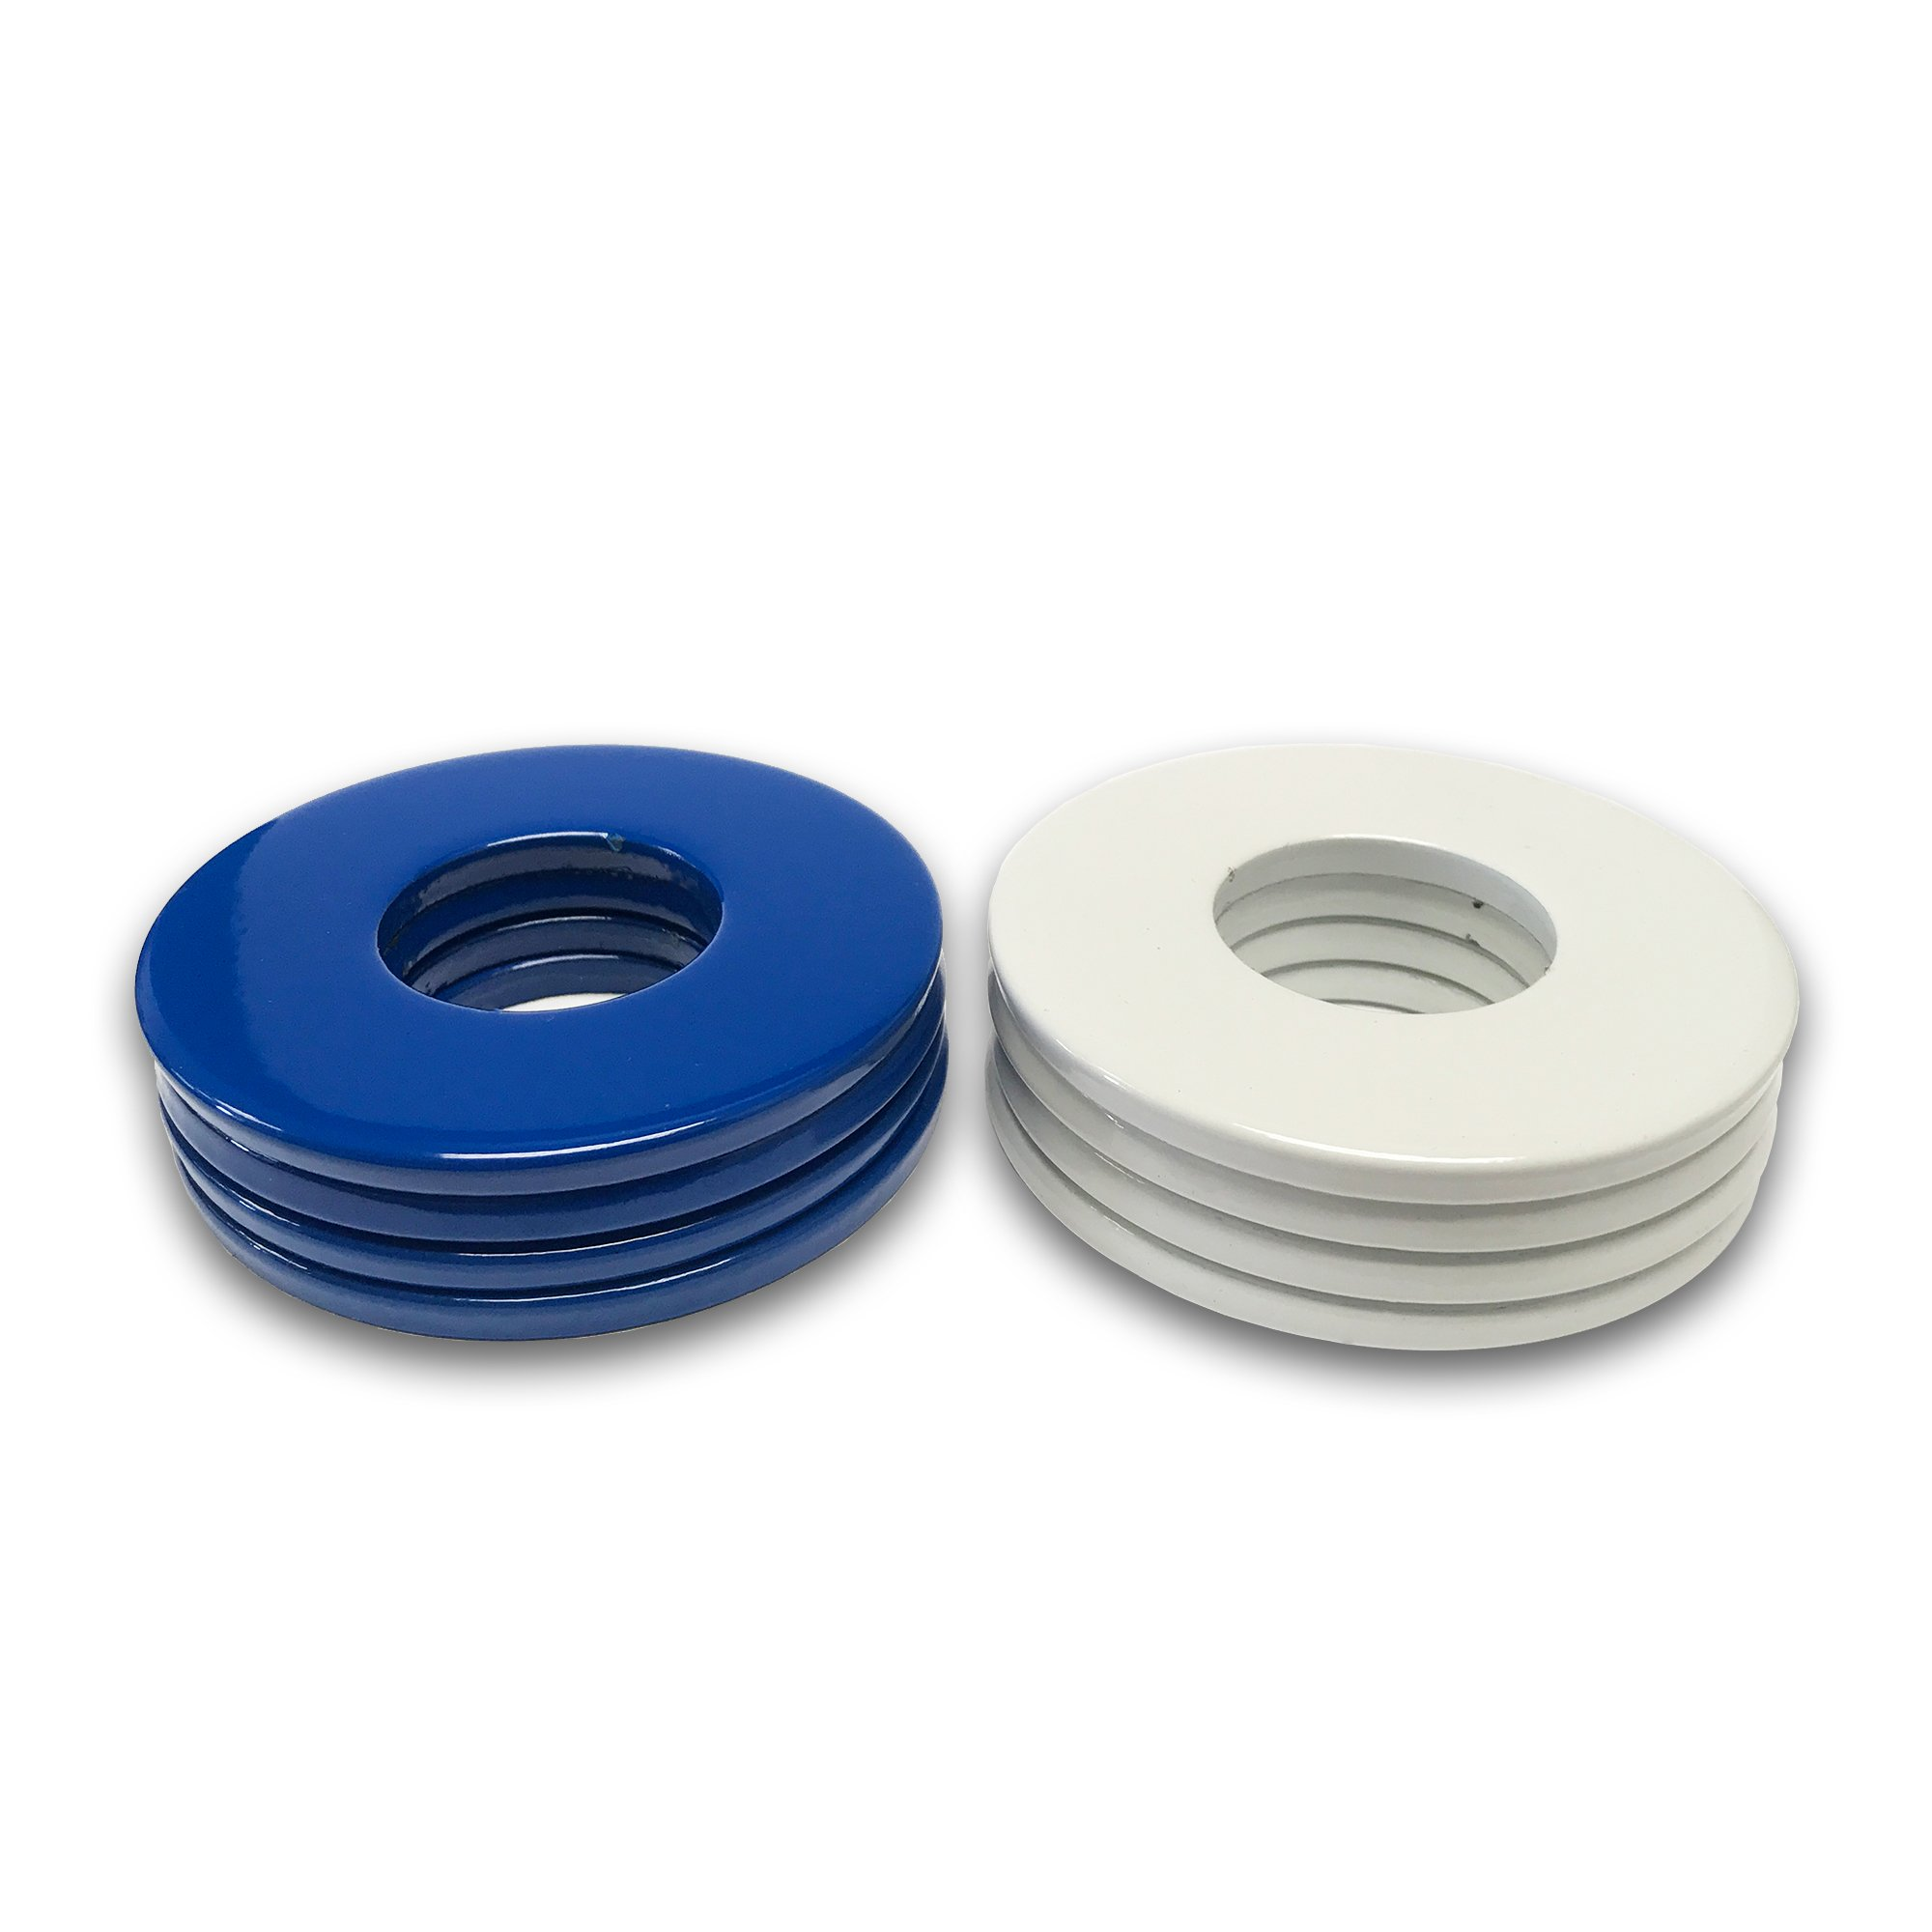 4 Blue/4 White Powder Coated Replacement 2-1/2 Washer Toss Pitching Game Washers - High Gloss! by Washer Toss Pros